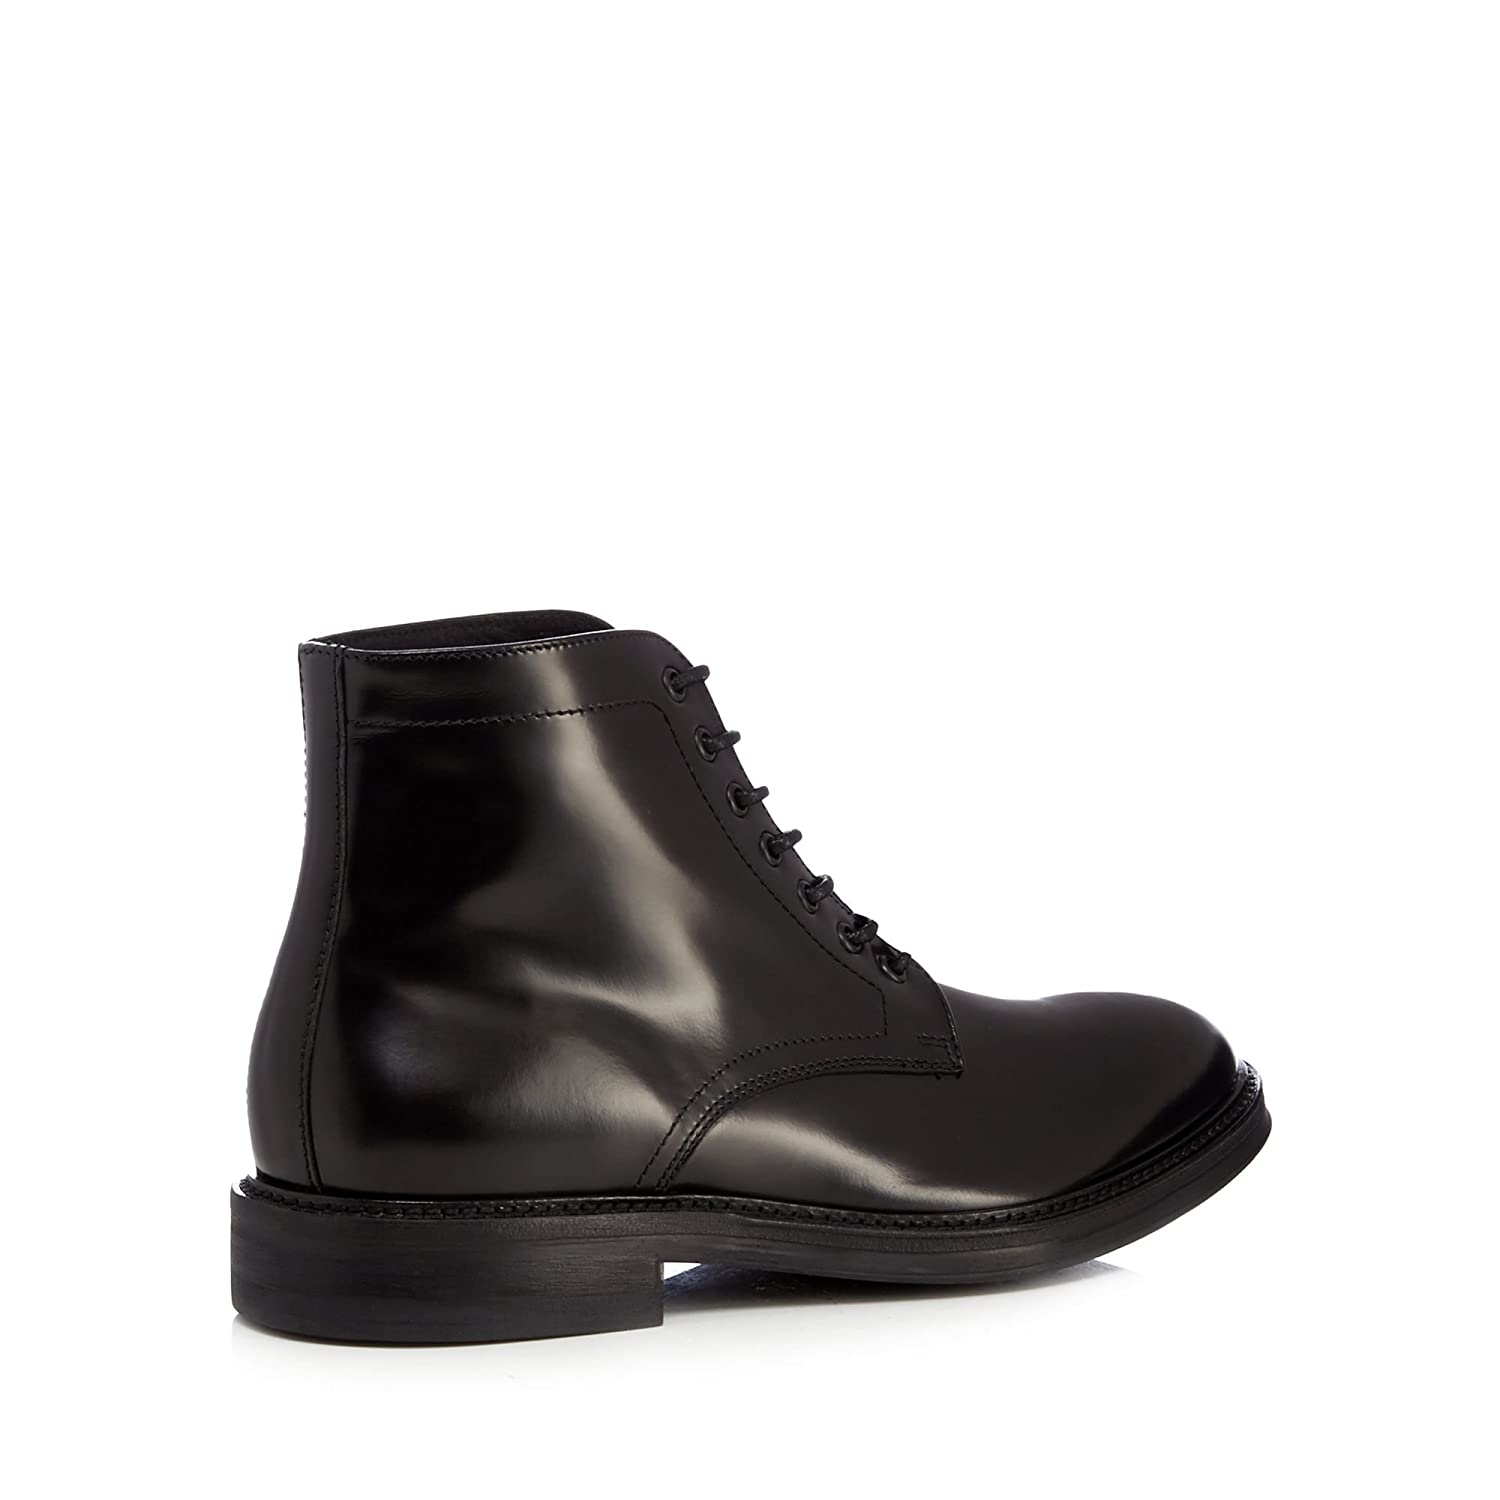 6ca3ada75c8 Debenhams Hammond & Co. by Patrick Grant Men Black 'Albans' Leather Ankle  Boots